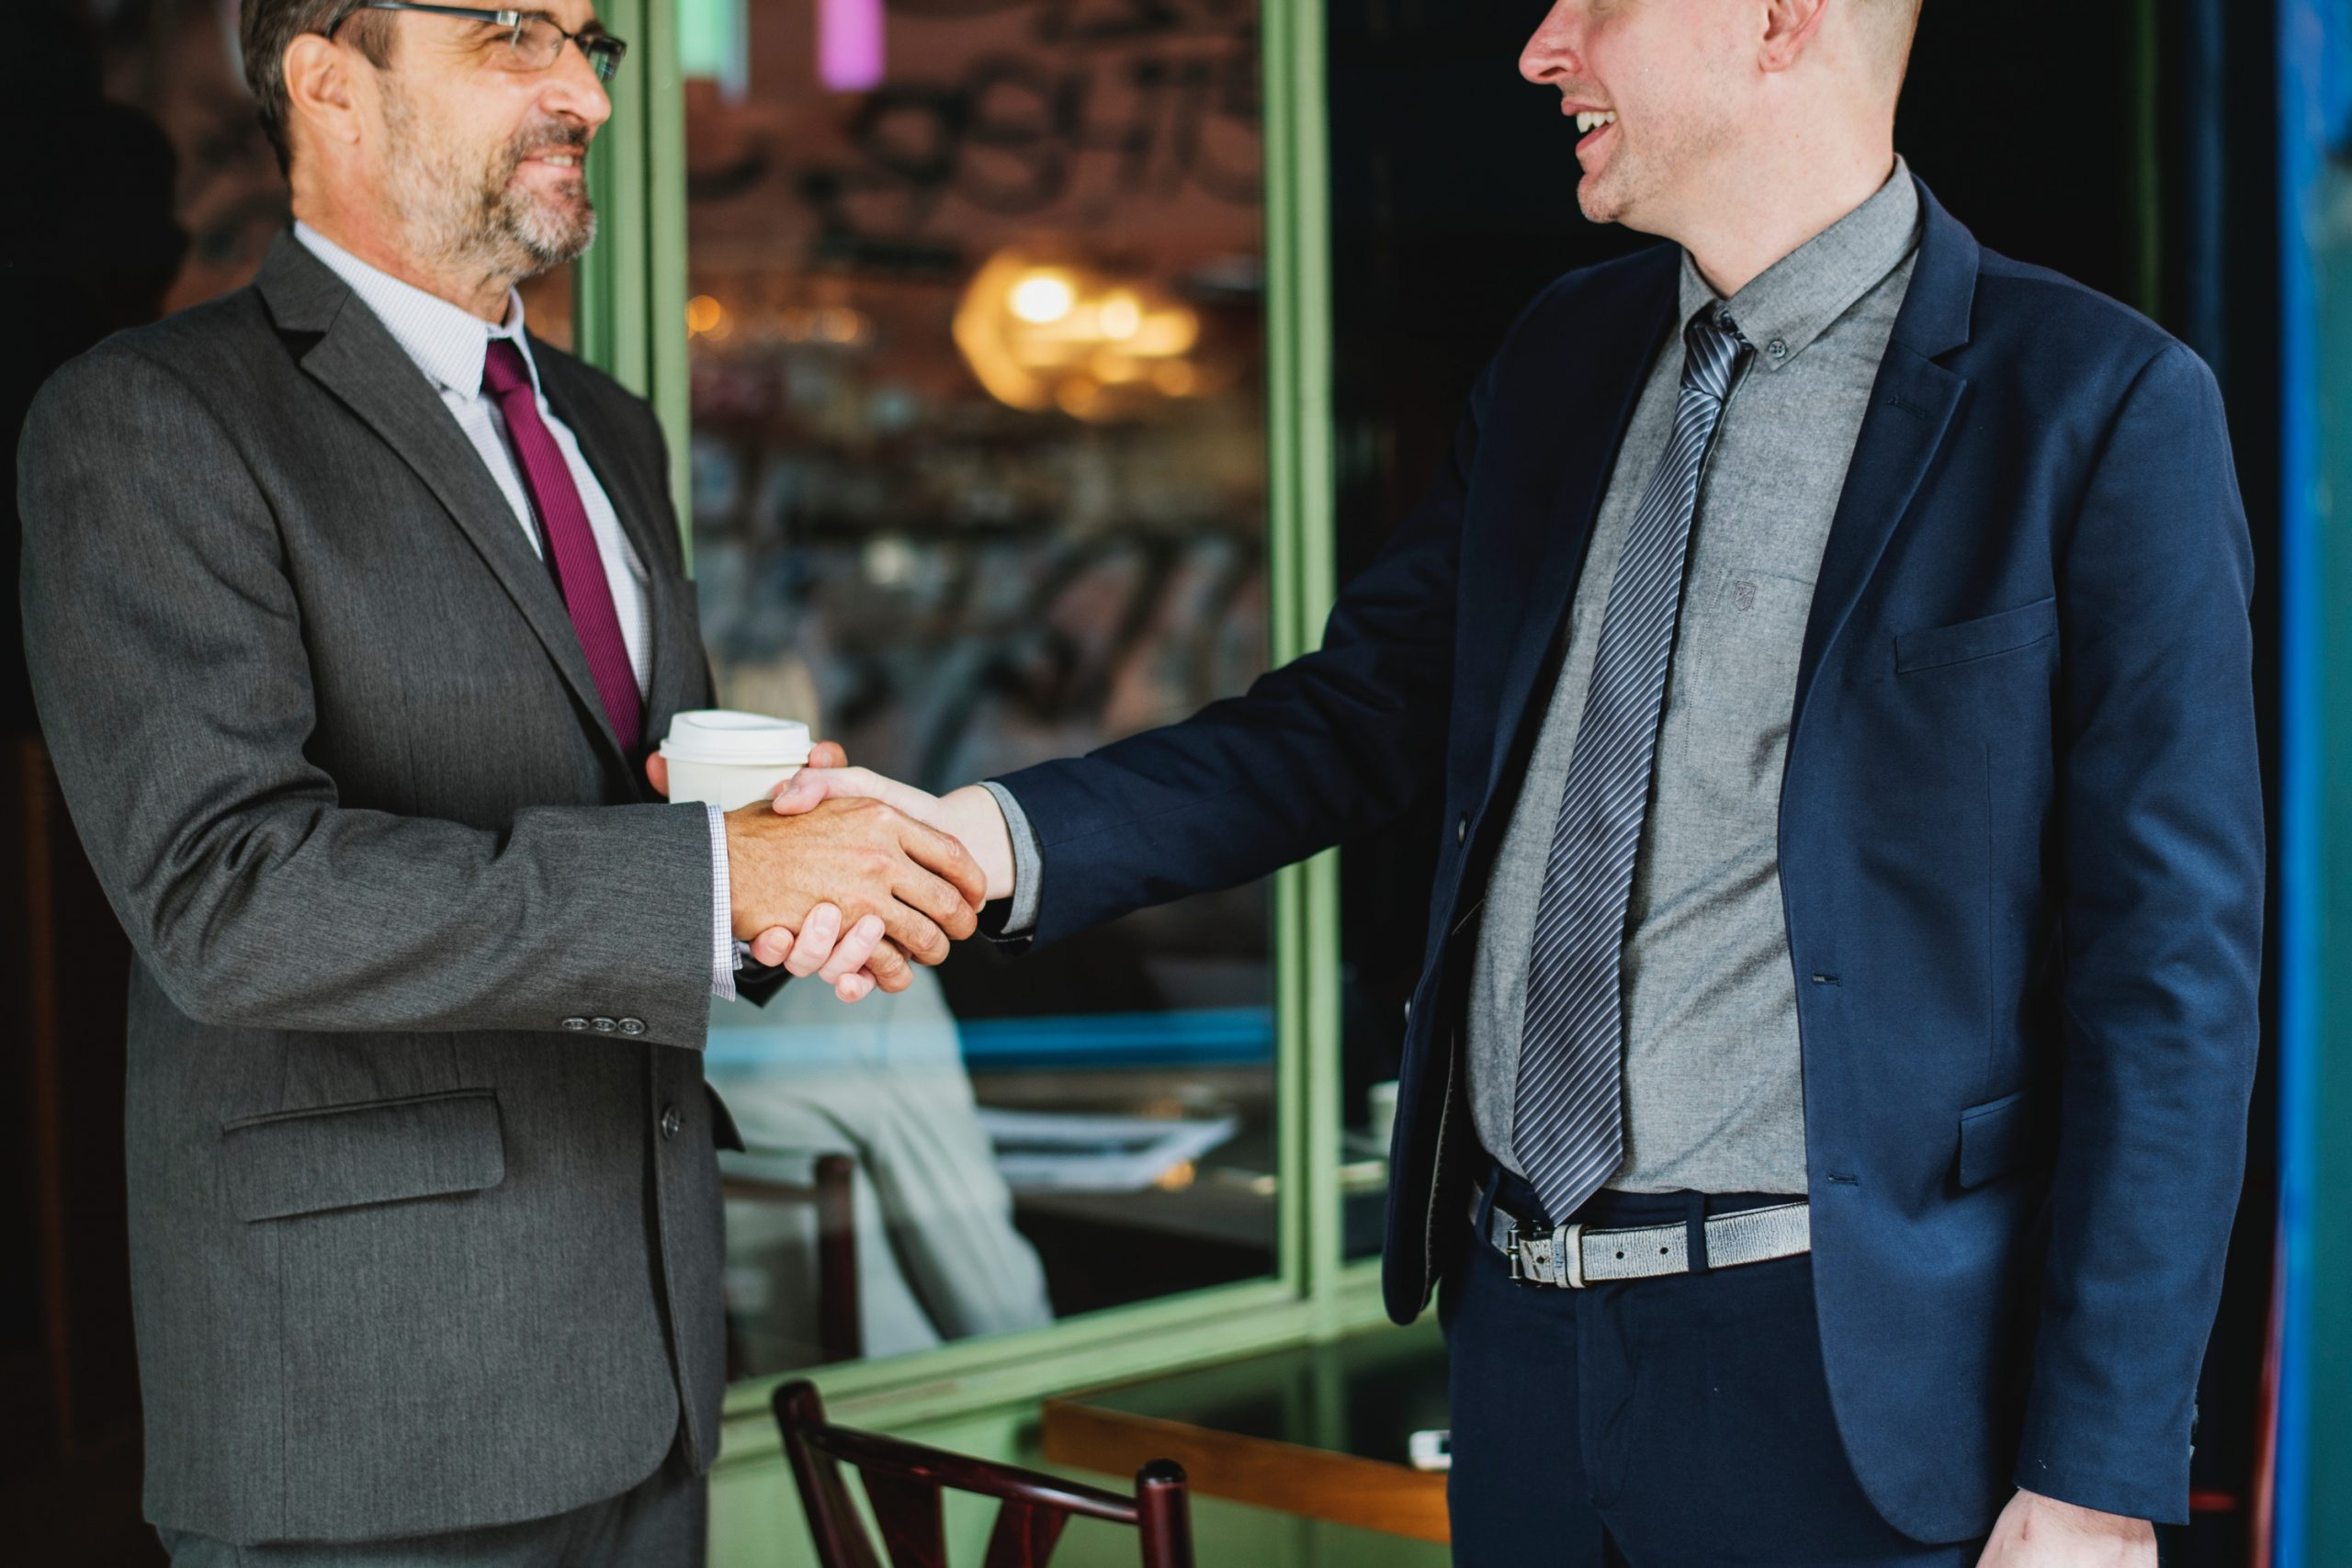 Customer Service Marketing Tips: First Impressions